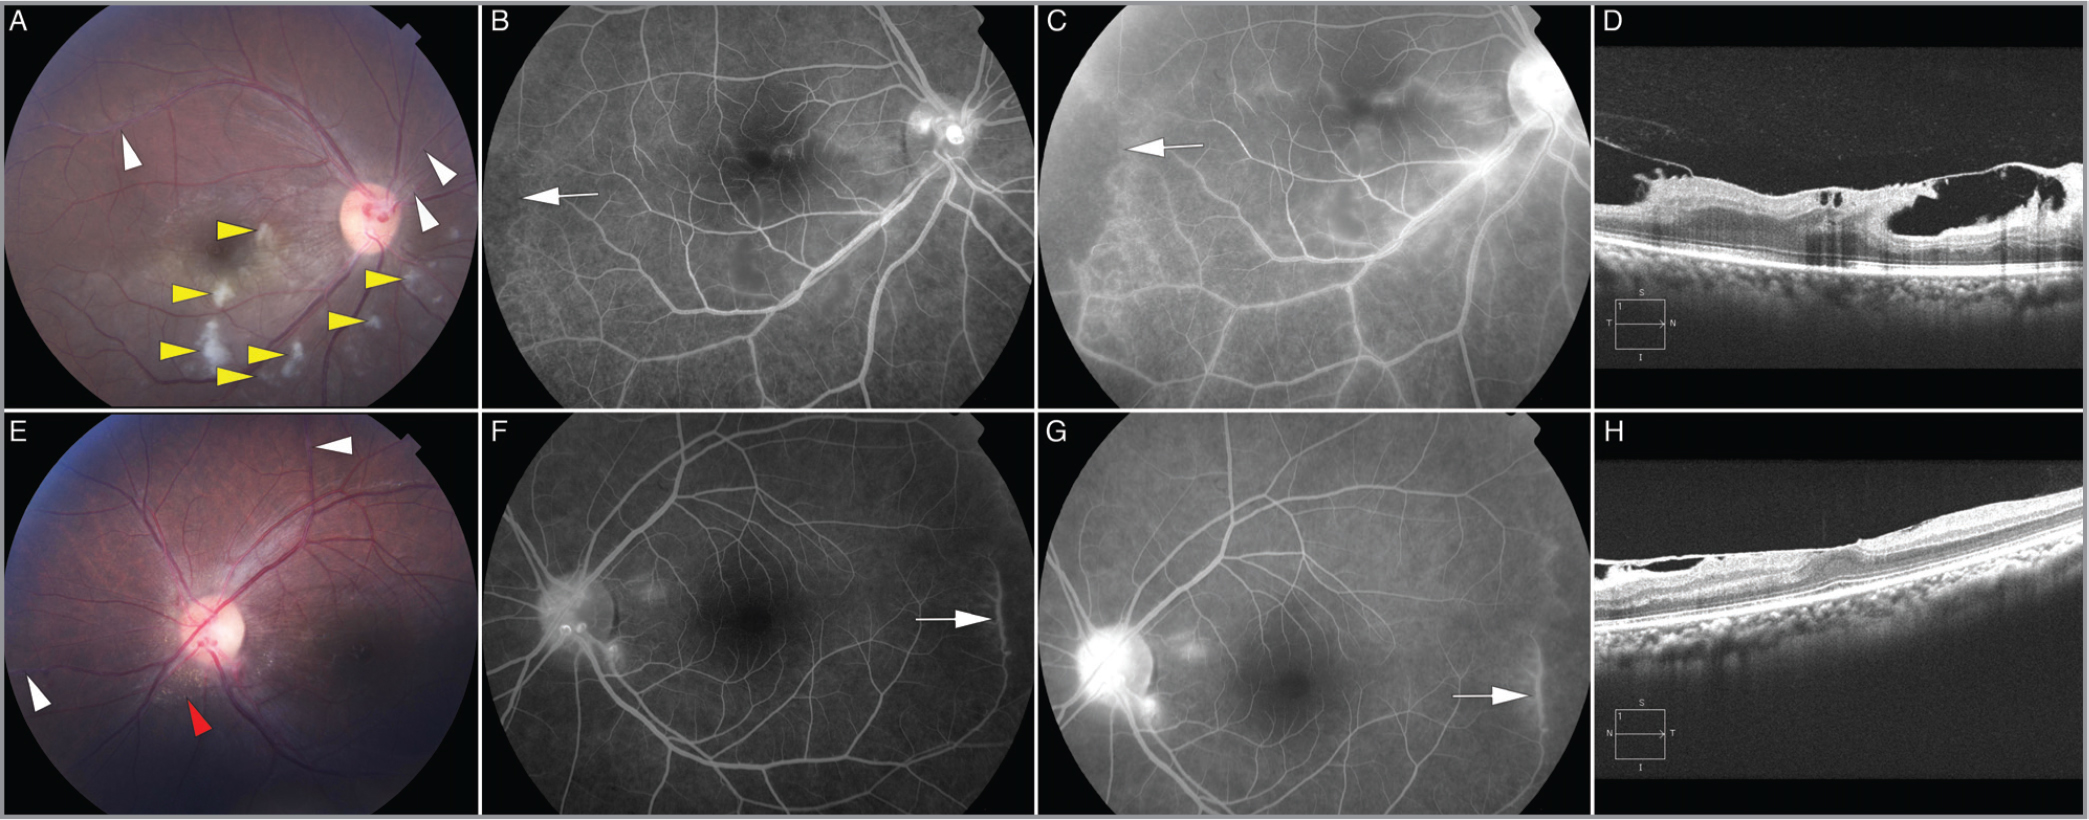 Multimodal retinal imaging at the first visit in May 2009. (A) Color fundus photograph of the right eye showing cotton-wool spots (yellow arrow heads), retinal whitening, retinal vein sheathing (white arrow heads), and aneurysmal dilations at the optic disc. (B,C) Intermediate-phase and late-phase fluorescein angiography (FA) of the right eye showing evidence of a branch retinal artery occlusion of the inferior temporal retinal artery, vessel tortuosity (white arrow), and disc hyperfluorescence. (D) Spectral-domain optical coherence tomography (SD-OCT) B-scan centered on the fovea of the right eye showing an epiretinal membrane (ERM) and vitreomacular traction. (E) Color fundus photograph of the left eye showing an ERM at the macula, hard exudates in the peripapillary region (red arrow head), retinal vein sheathing (white arrow heads), and aneurysmal dilations at the optic disc. (F,G) Mid-phase and late-phase FA of the left eye showing vessel tortuosity, staining consistent with vasculitis (white arrow), and disc hyperfluorescence. (H) SD-OCT B-scan centered on the fovea of the left eye shows an ERM and vitreomacular traction.